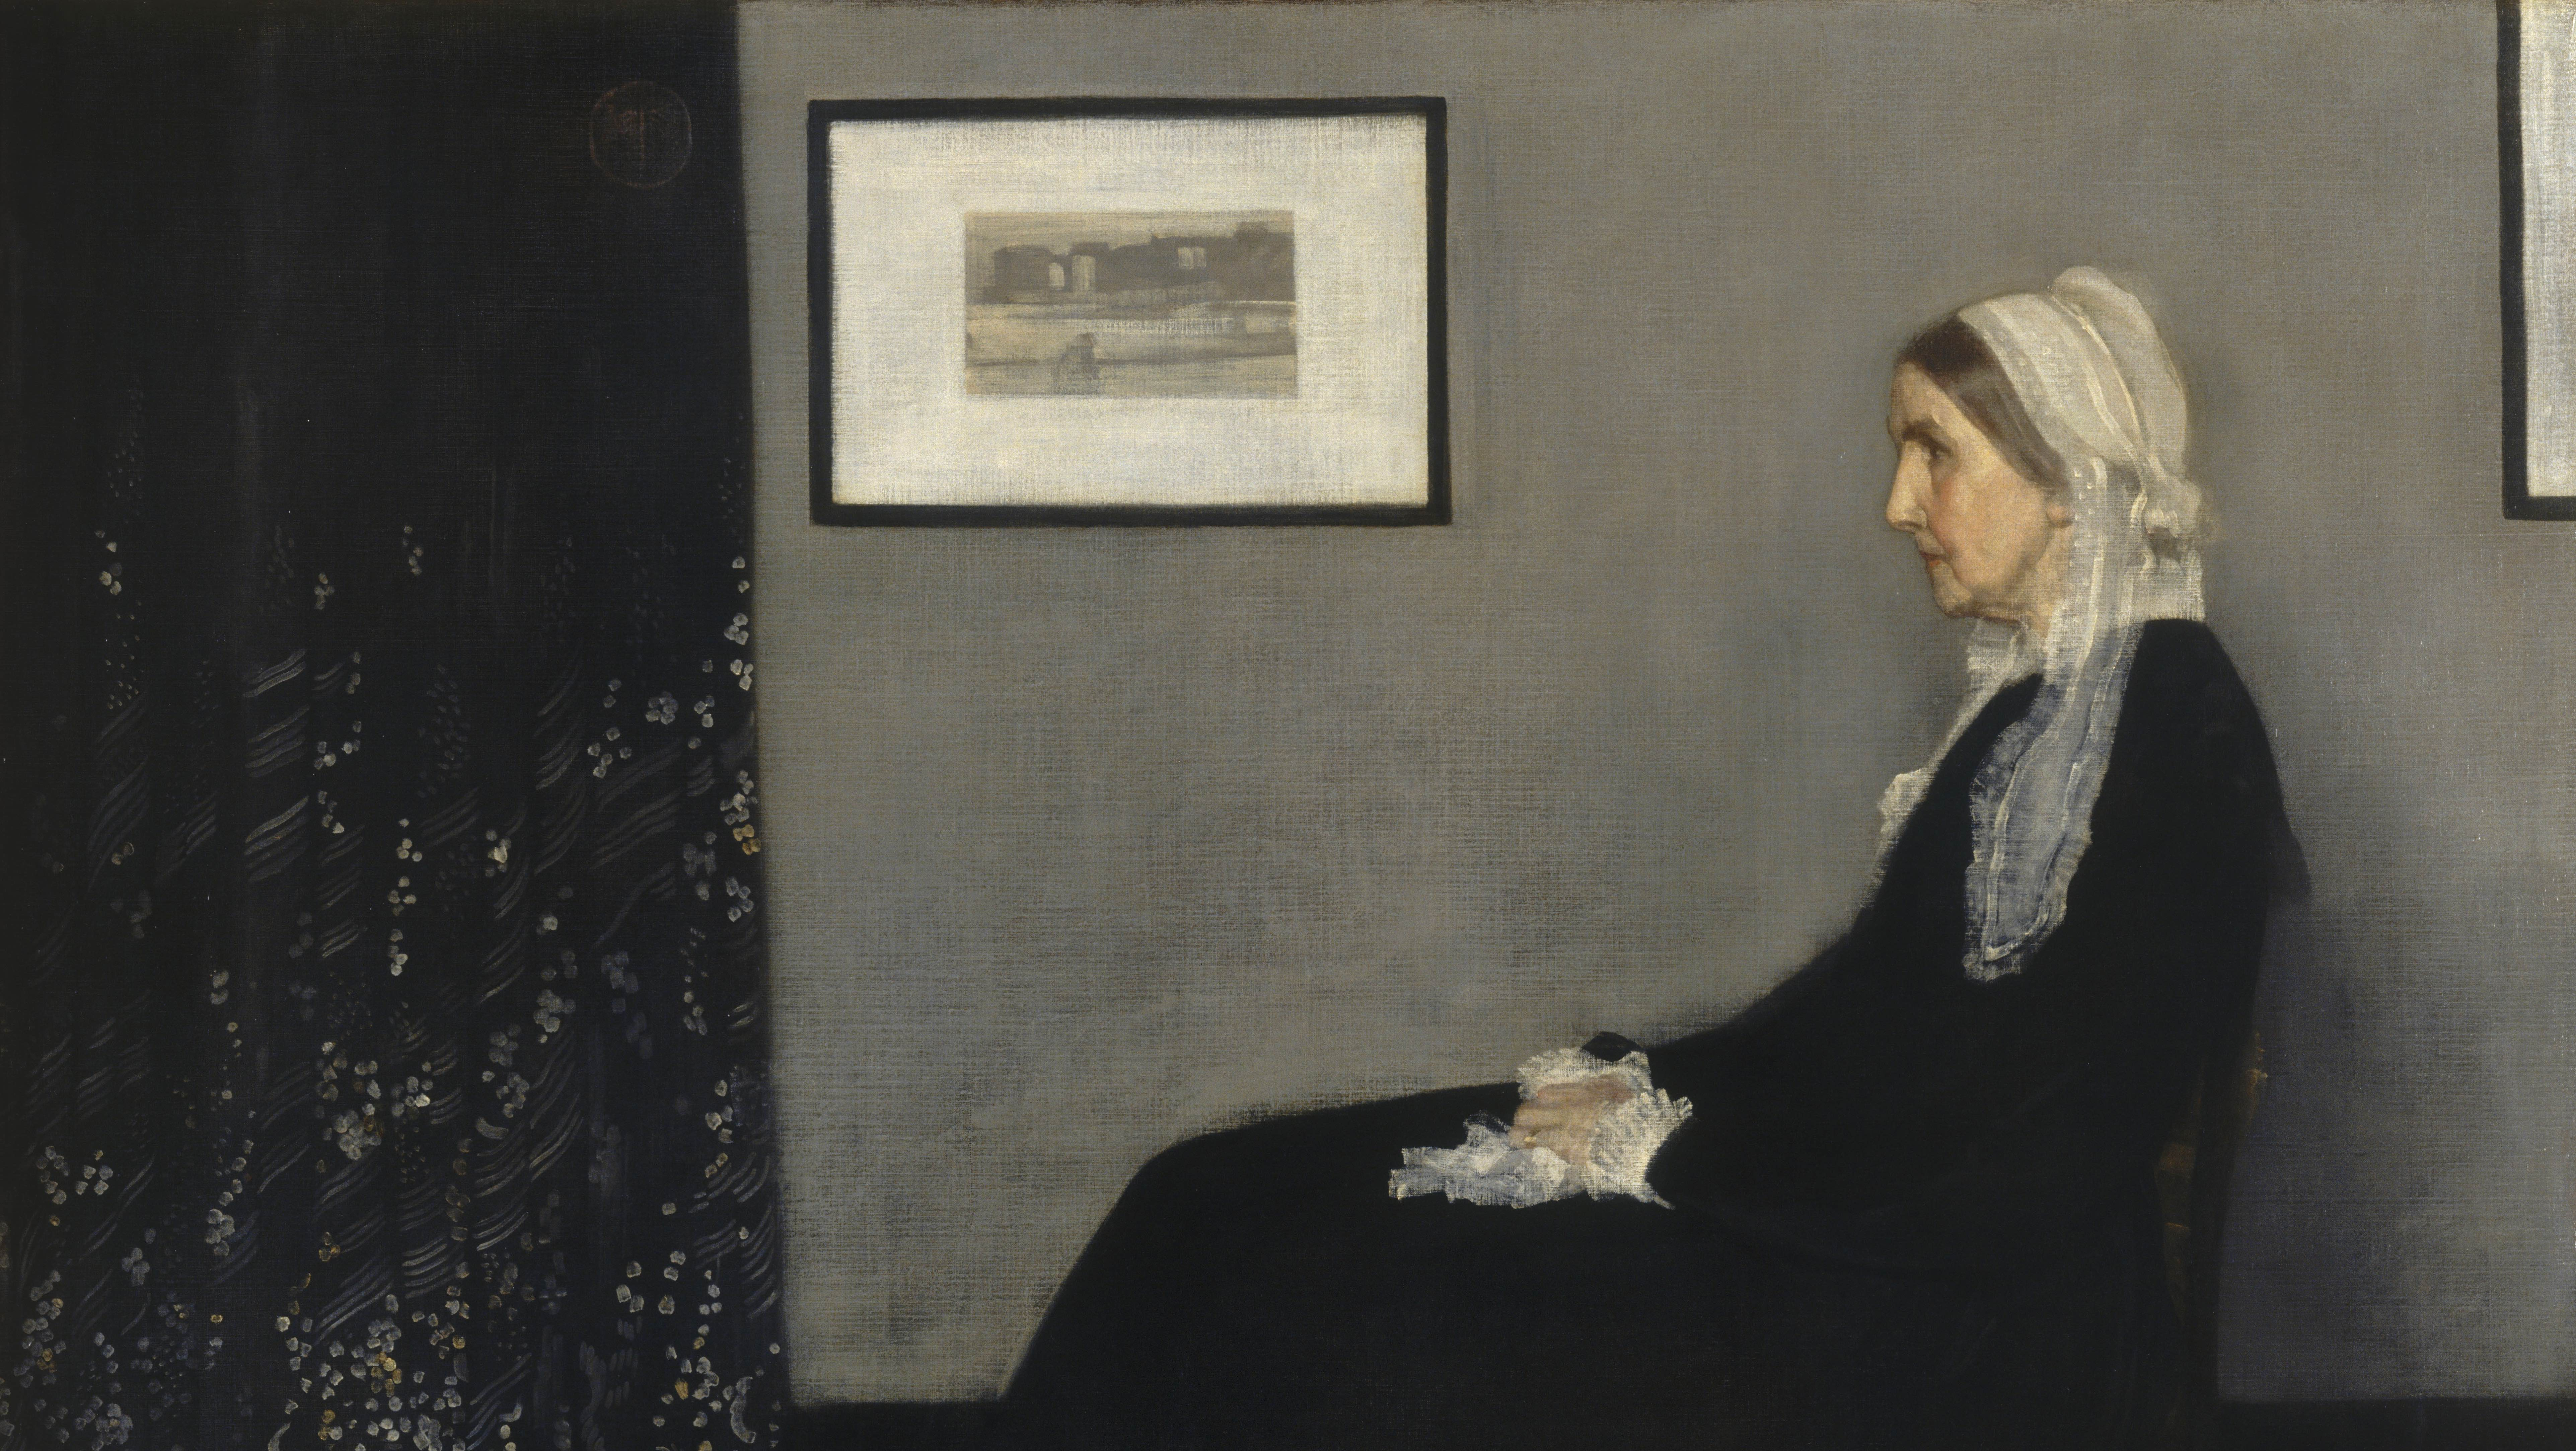 A painting of a woman dressed in black sitting in a chair parallel to a gray wall.